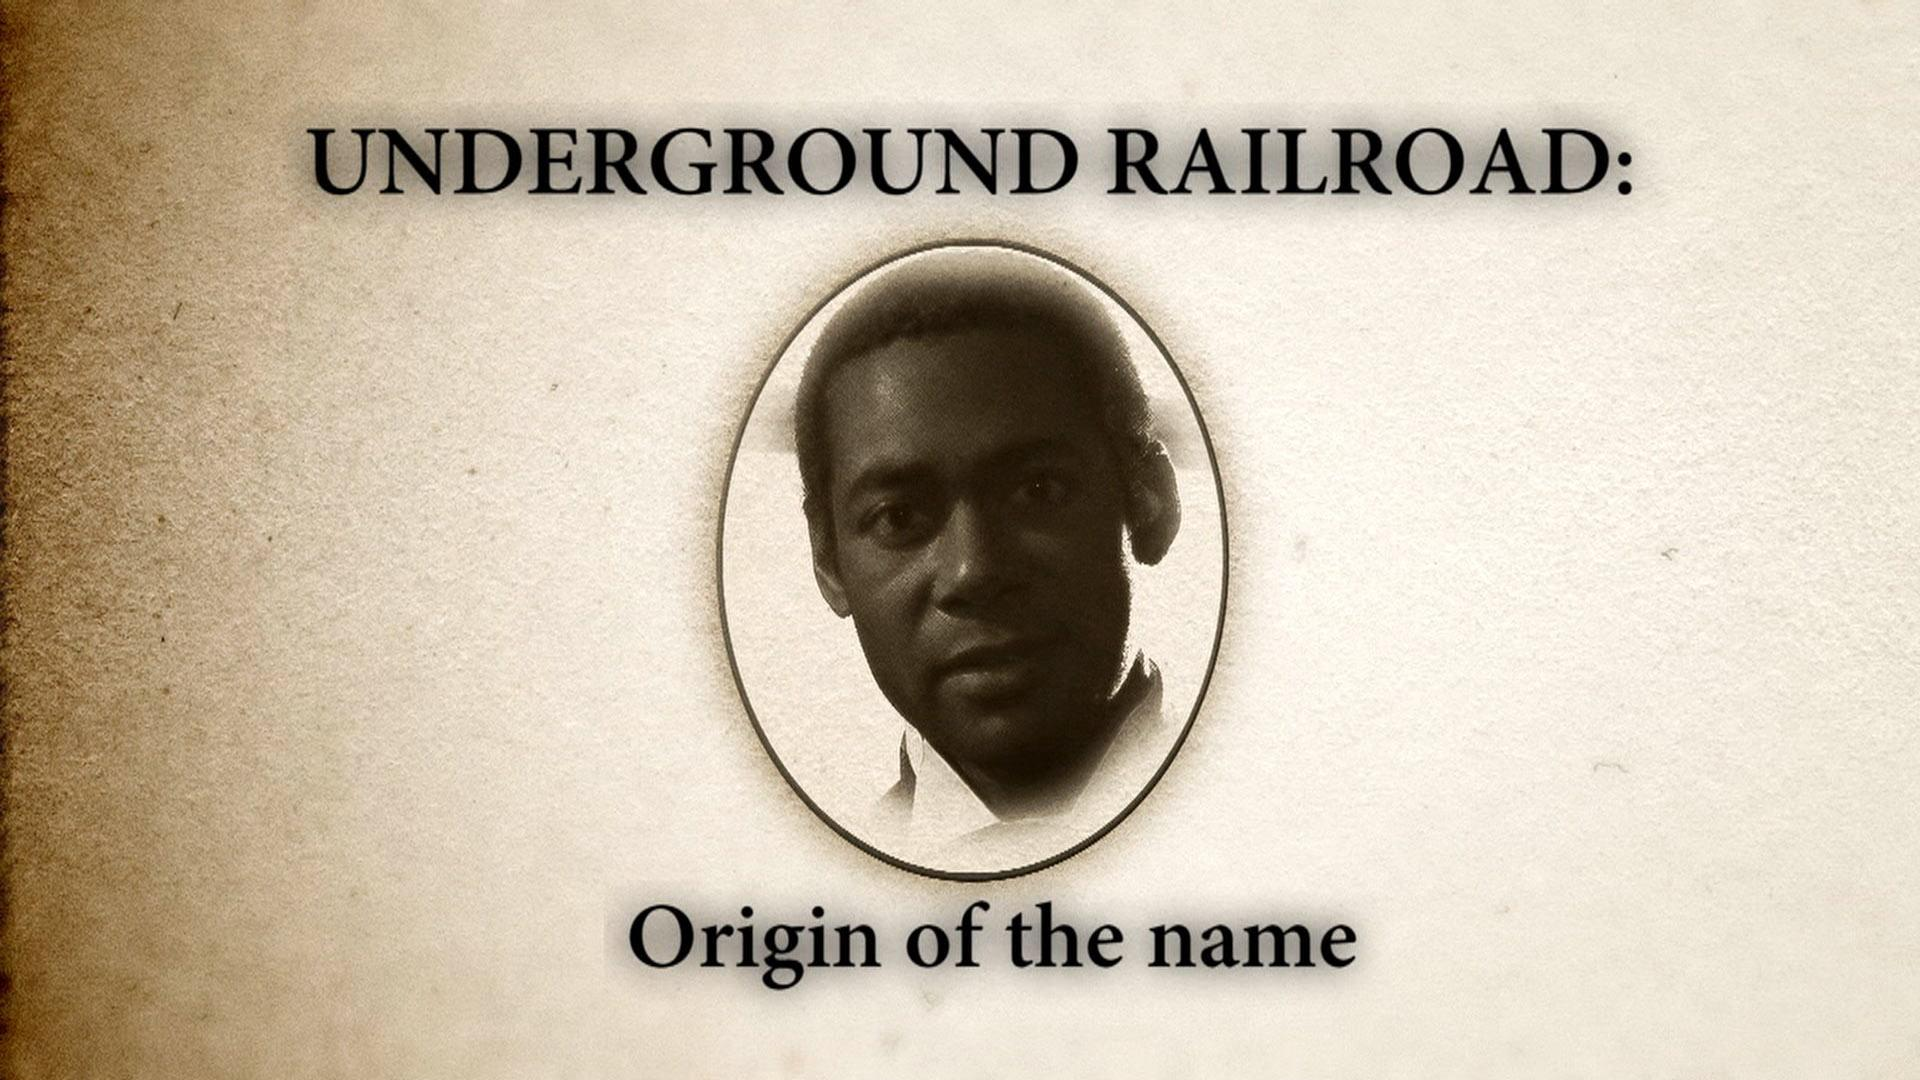 a history of the underground railroad and its importance for slavery abolishment Slavery in the modern world form of slave resistance—running away from slavery—and its political impact in history of the underground railroad.